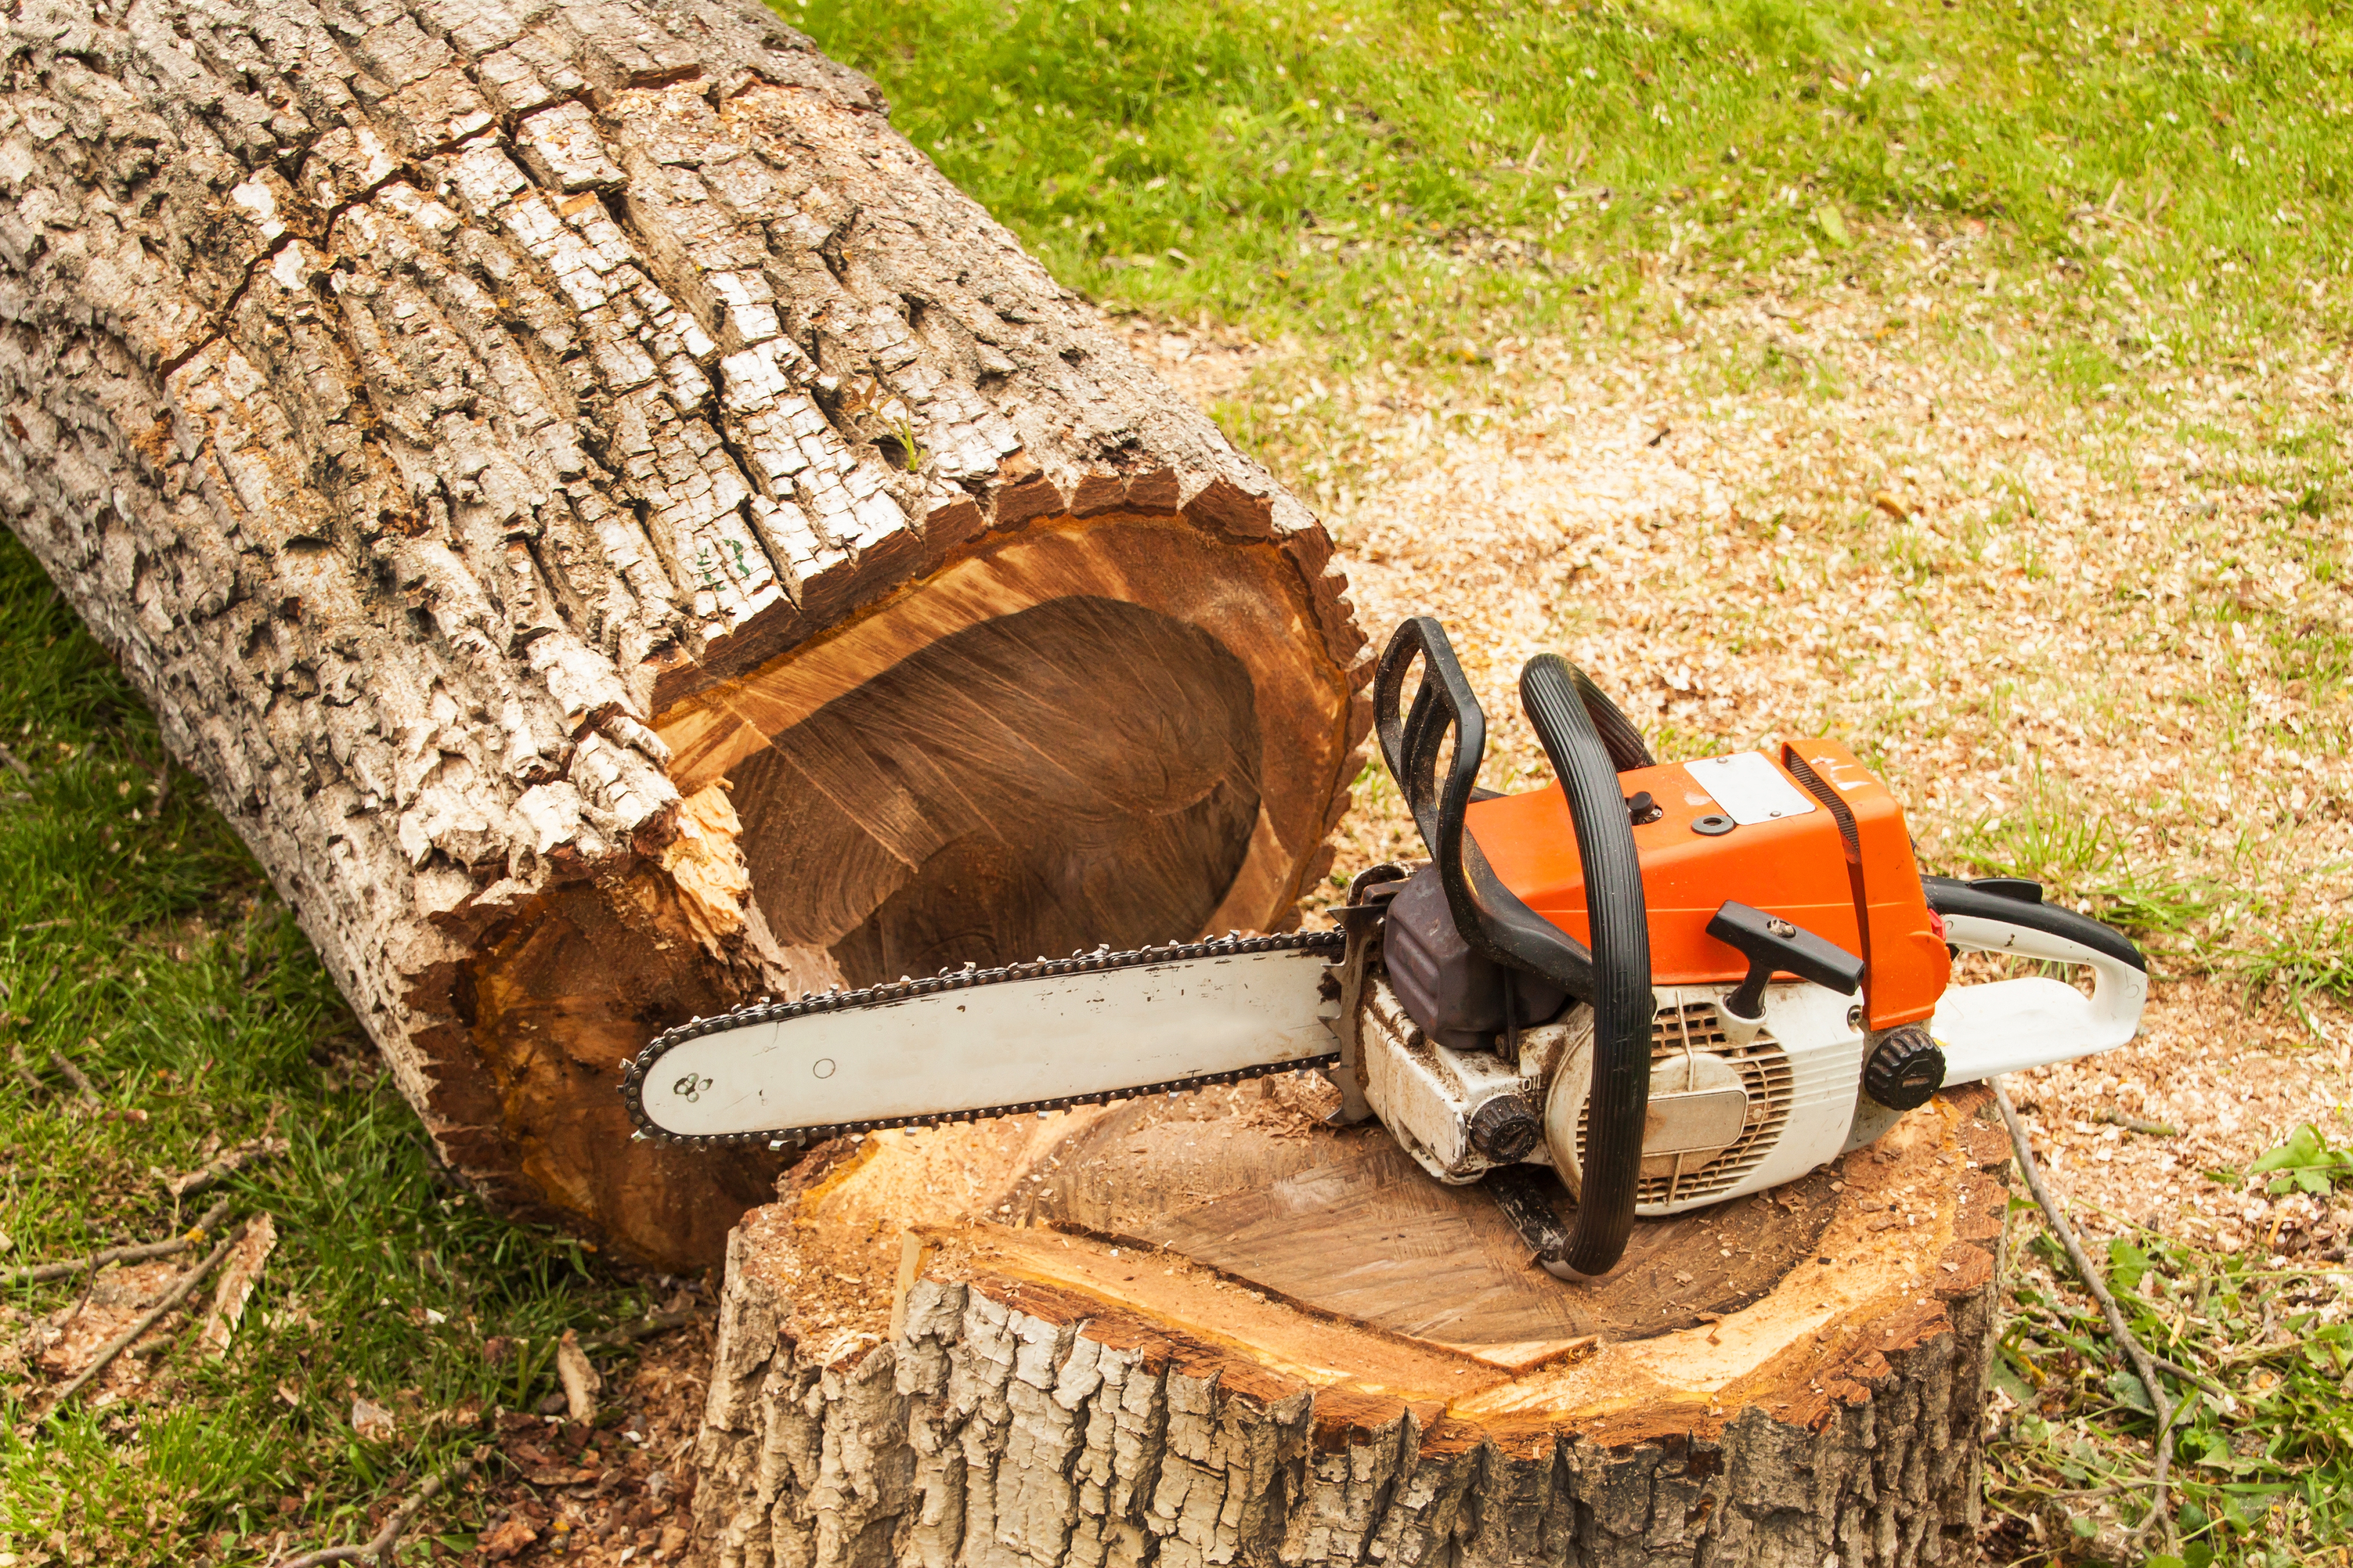 How To Troubleshoot A Chainsaw That Won't Start | Hunker